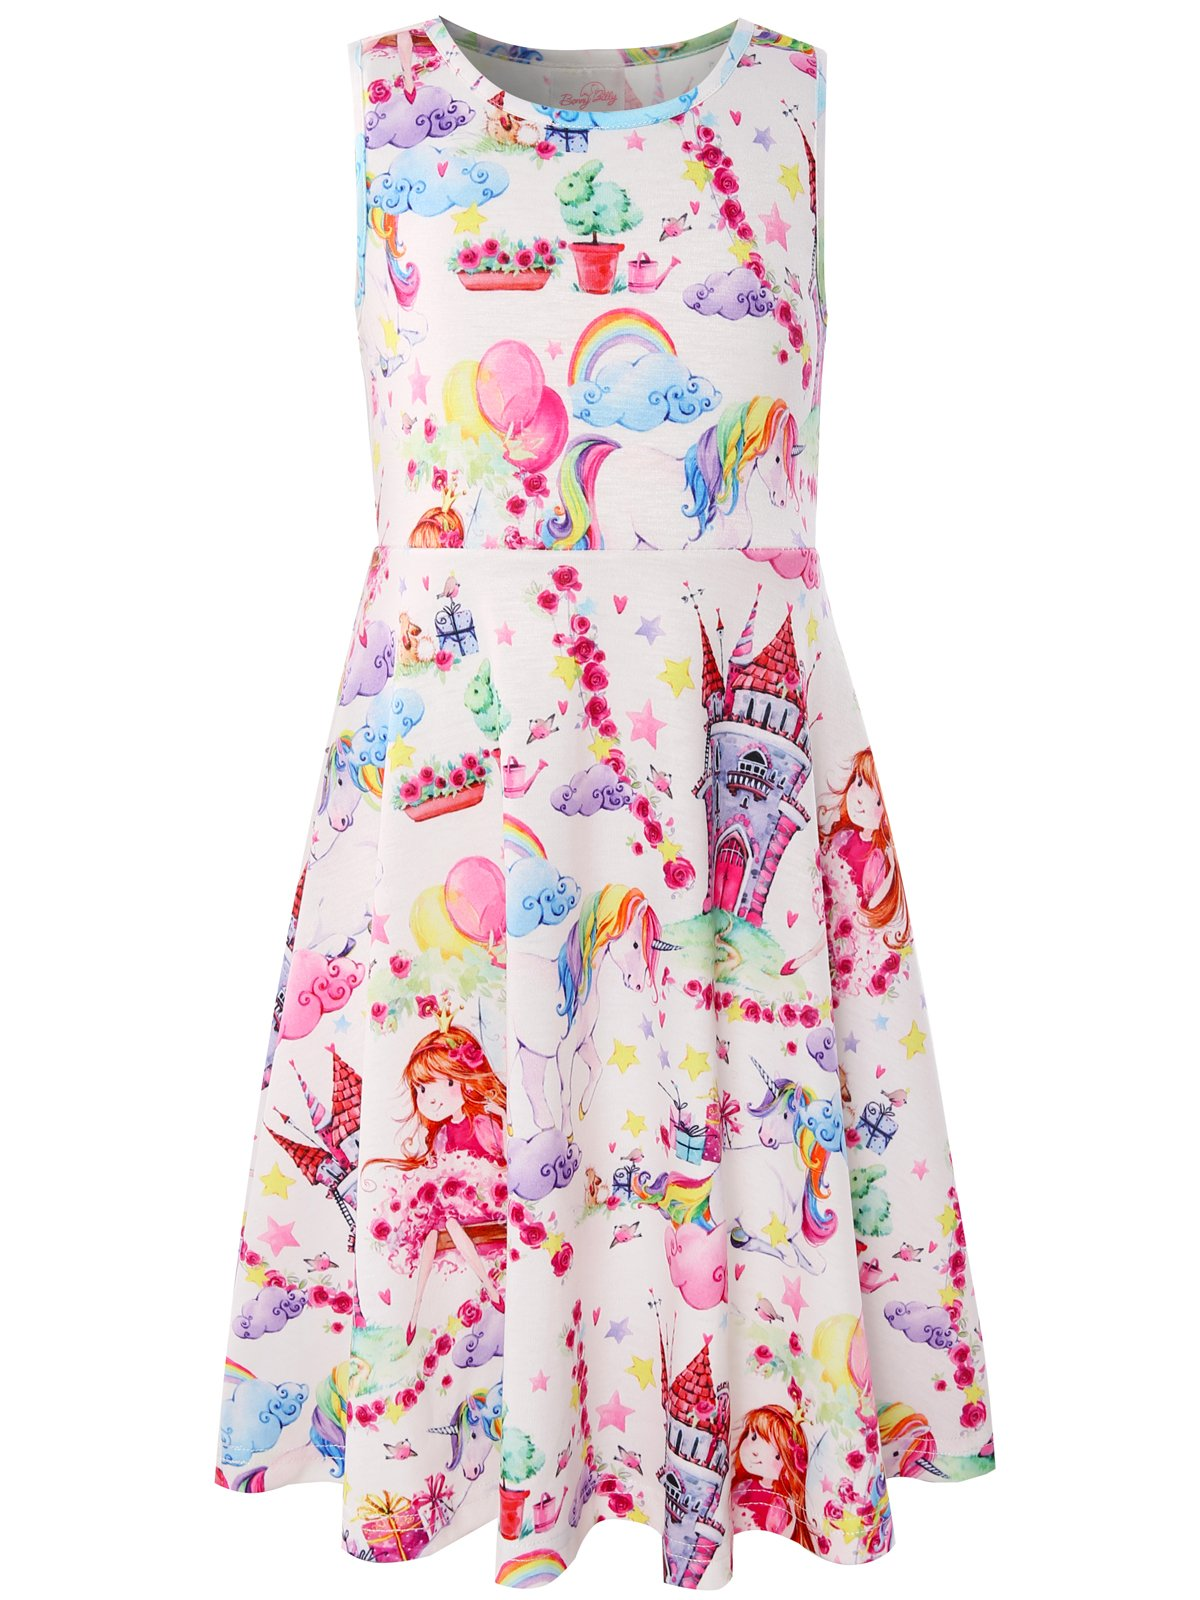 Bonny Billy Girl's Cacual Summer Tank Dresses for Kids